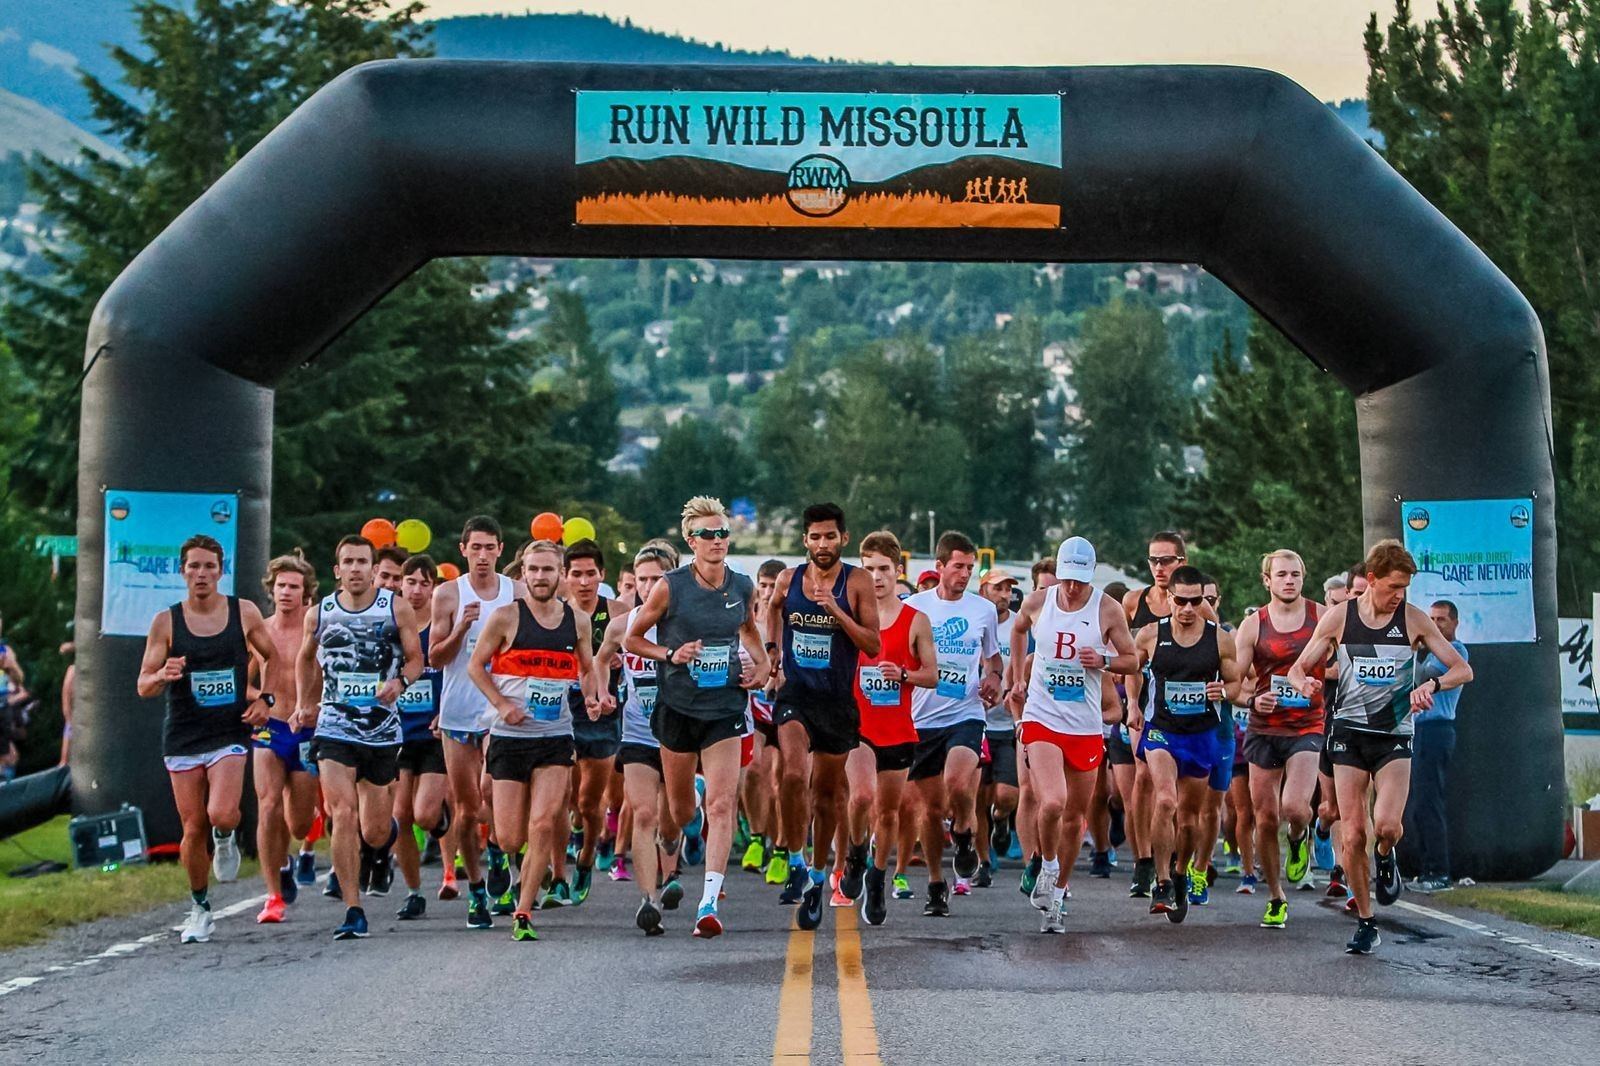 2021 Missoula Marathon is going virtual for the second year in a row due to the pandemic